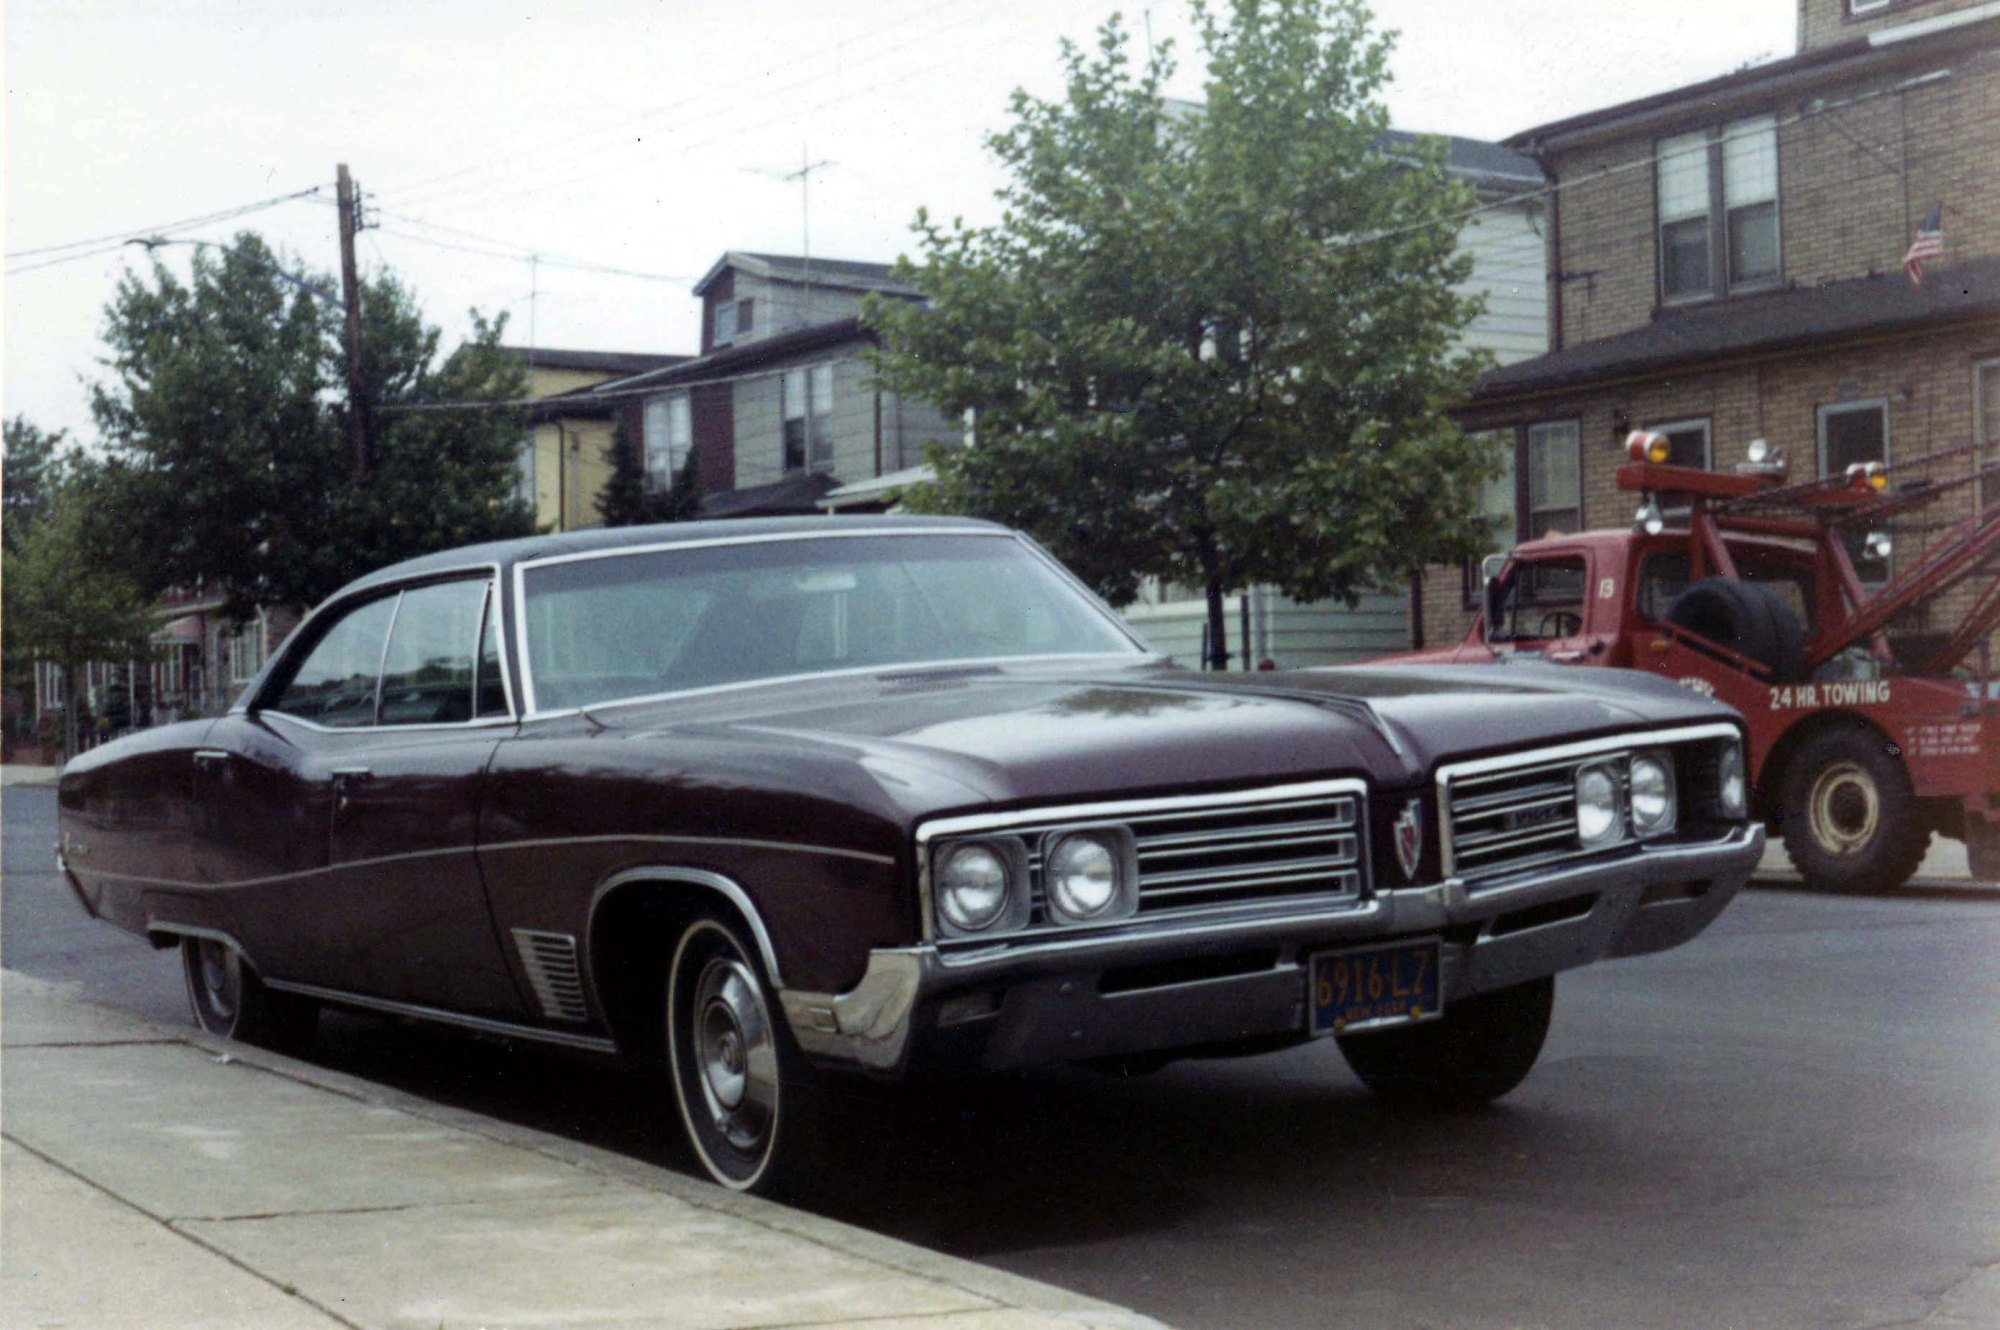 hight resolution of wiring diagram on 1968 buick gs 1937 buick wiring diagram wiring diagram elsalvadorla 1965 buick riviera wiring diagram 1965 buick riviera wheels